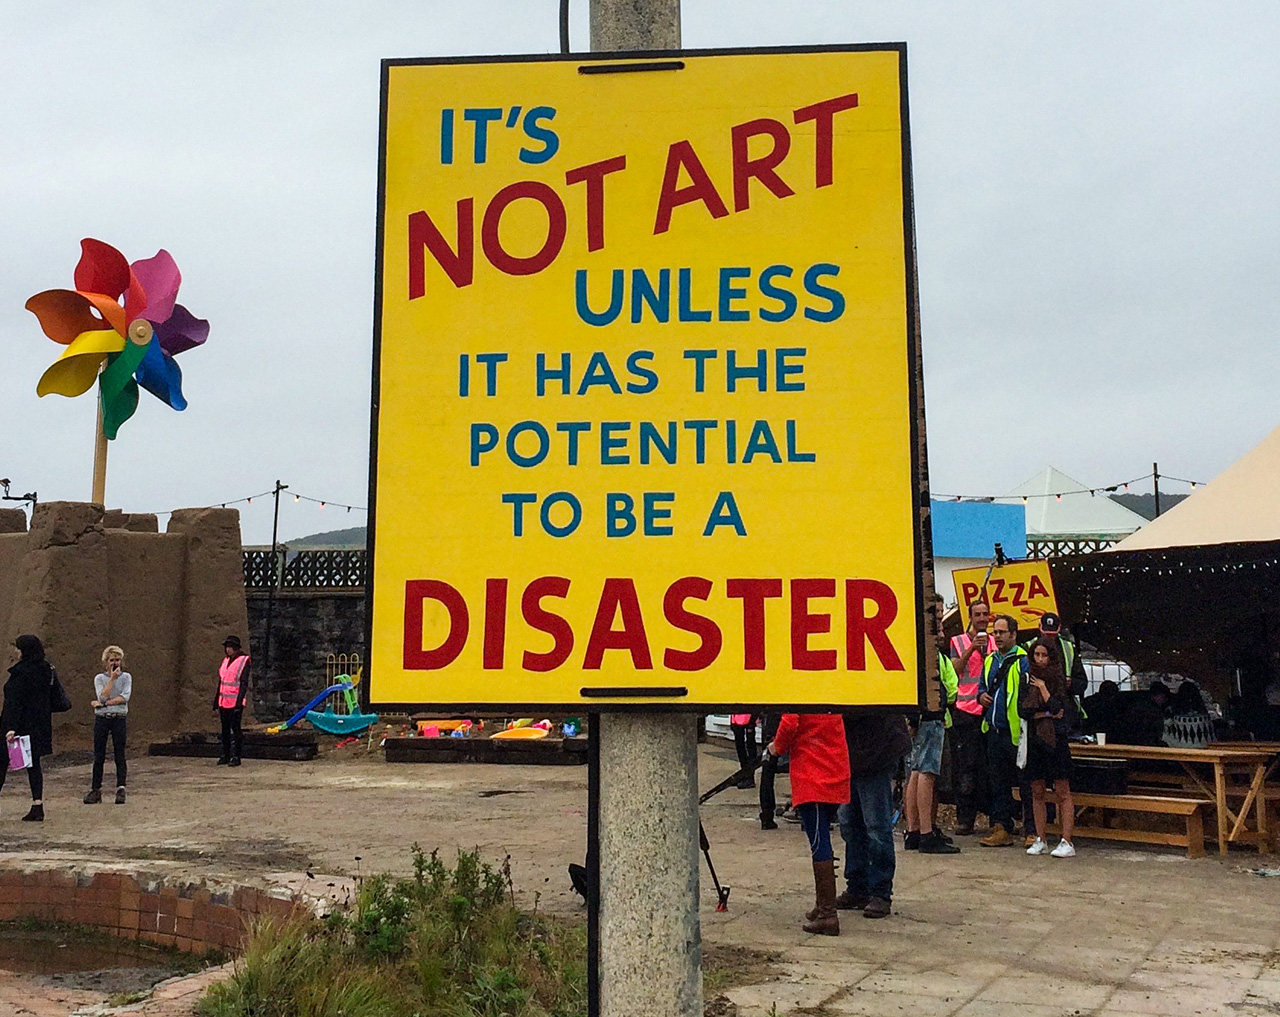 Disaster is necessary.